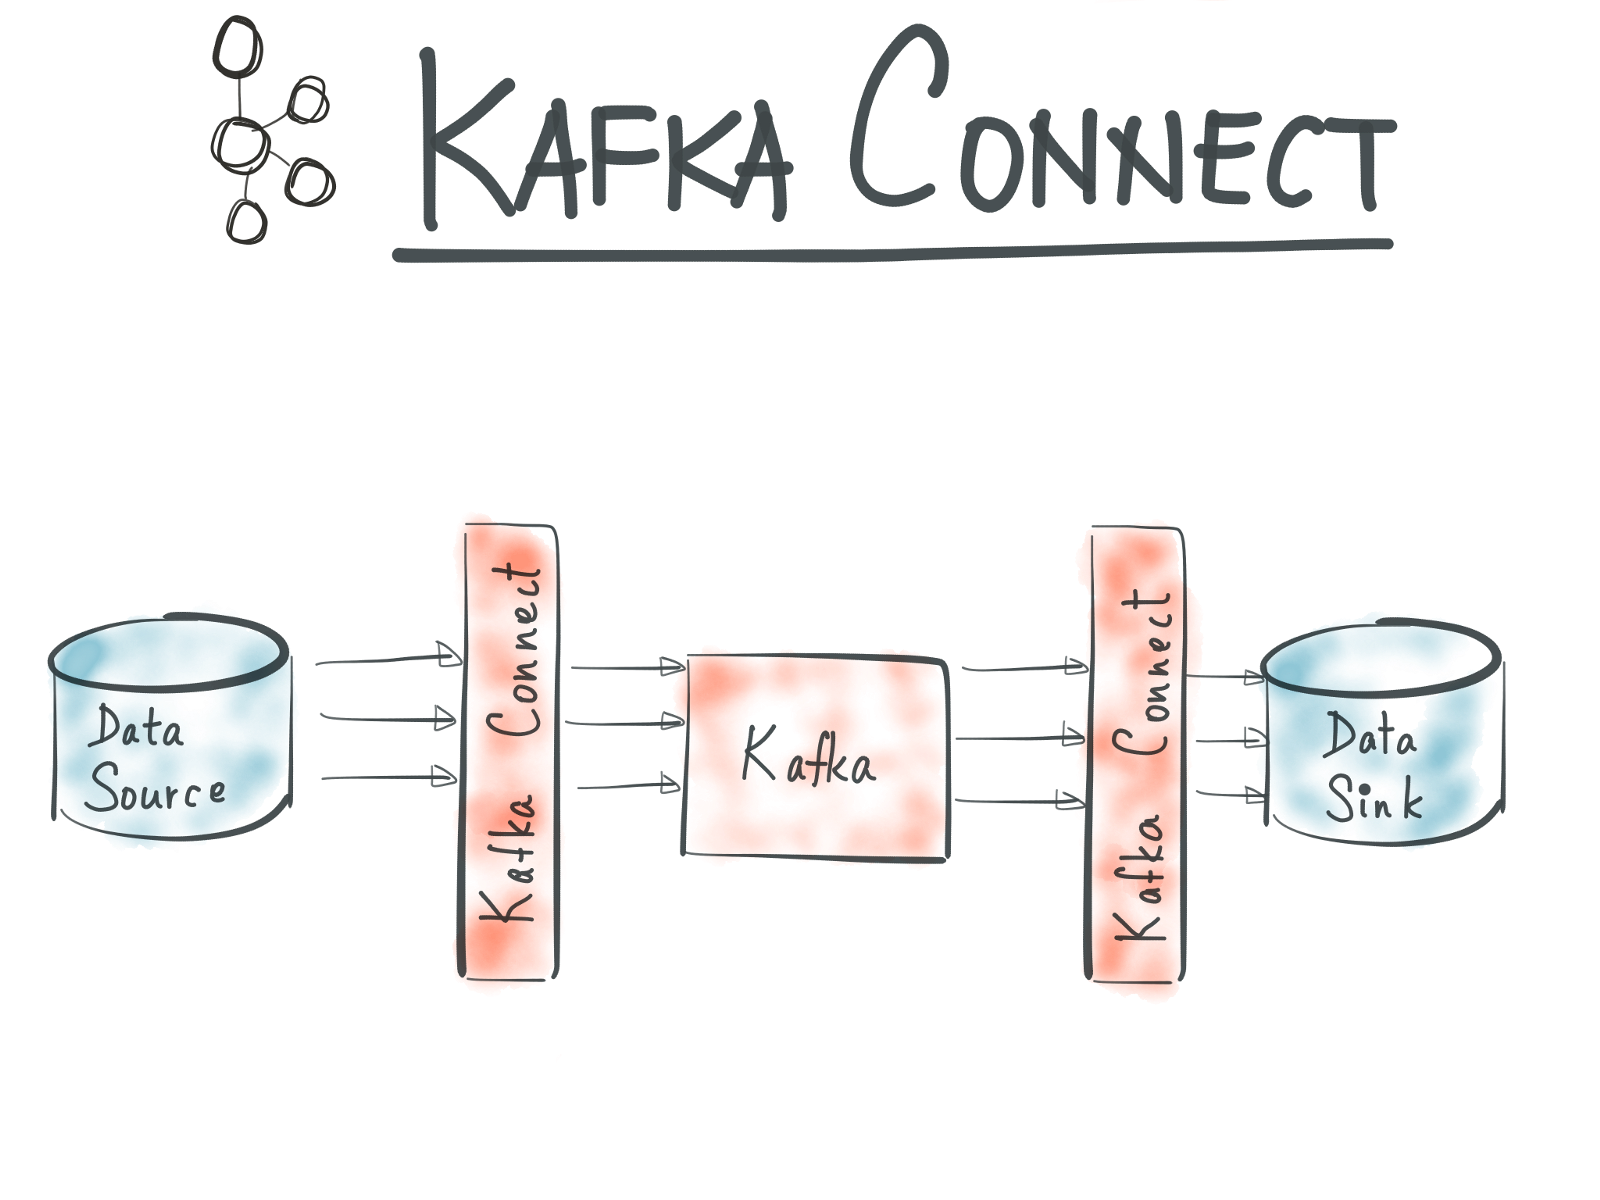 Writing Your Own Sink Connector for Your Kafka Stack - By